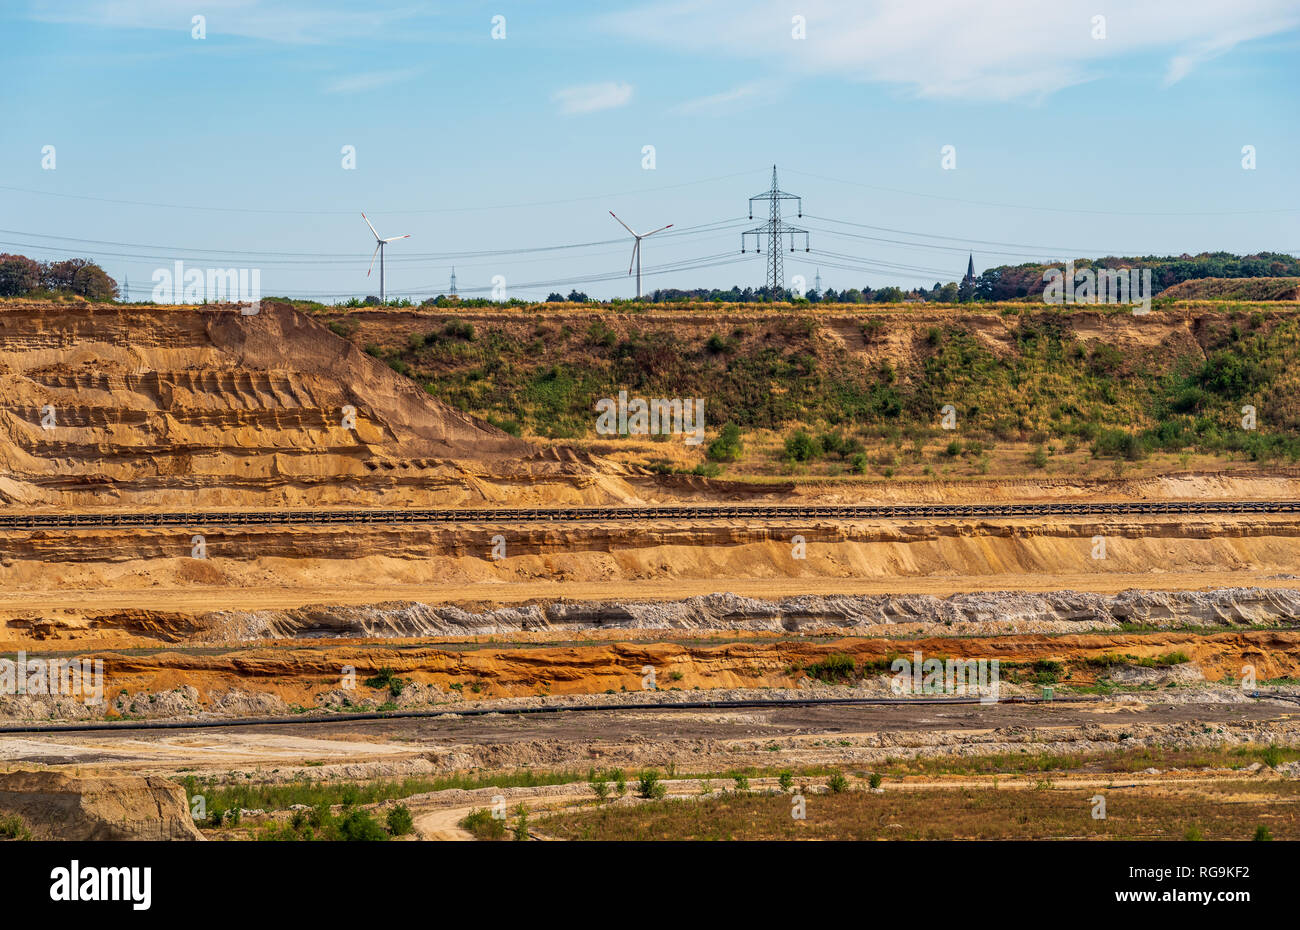 View to the edge of a lignite mining area with conveyor belts, wind power wheels in background, Etzweiler, Rhenish lignite mining area Stock Photo